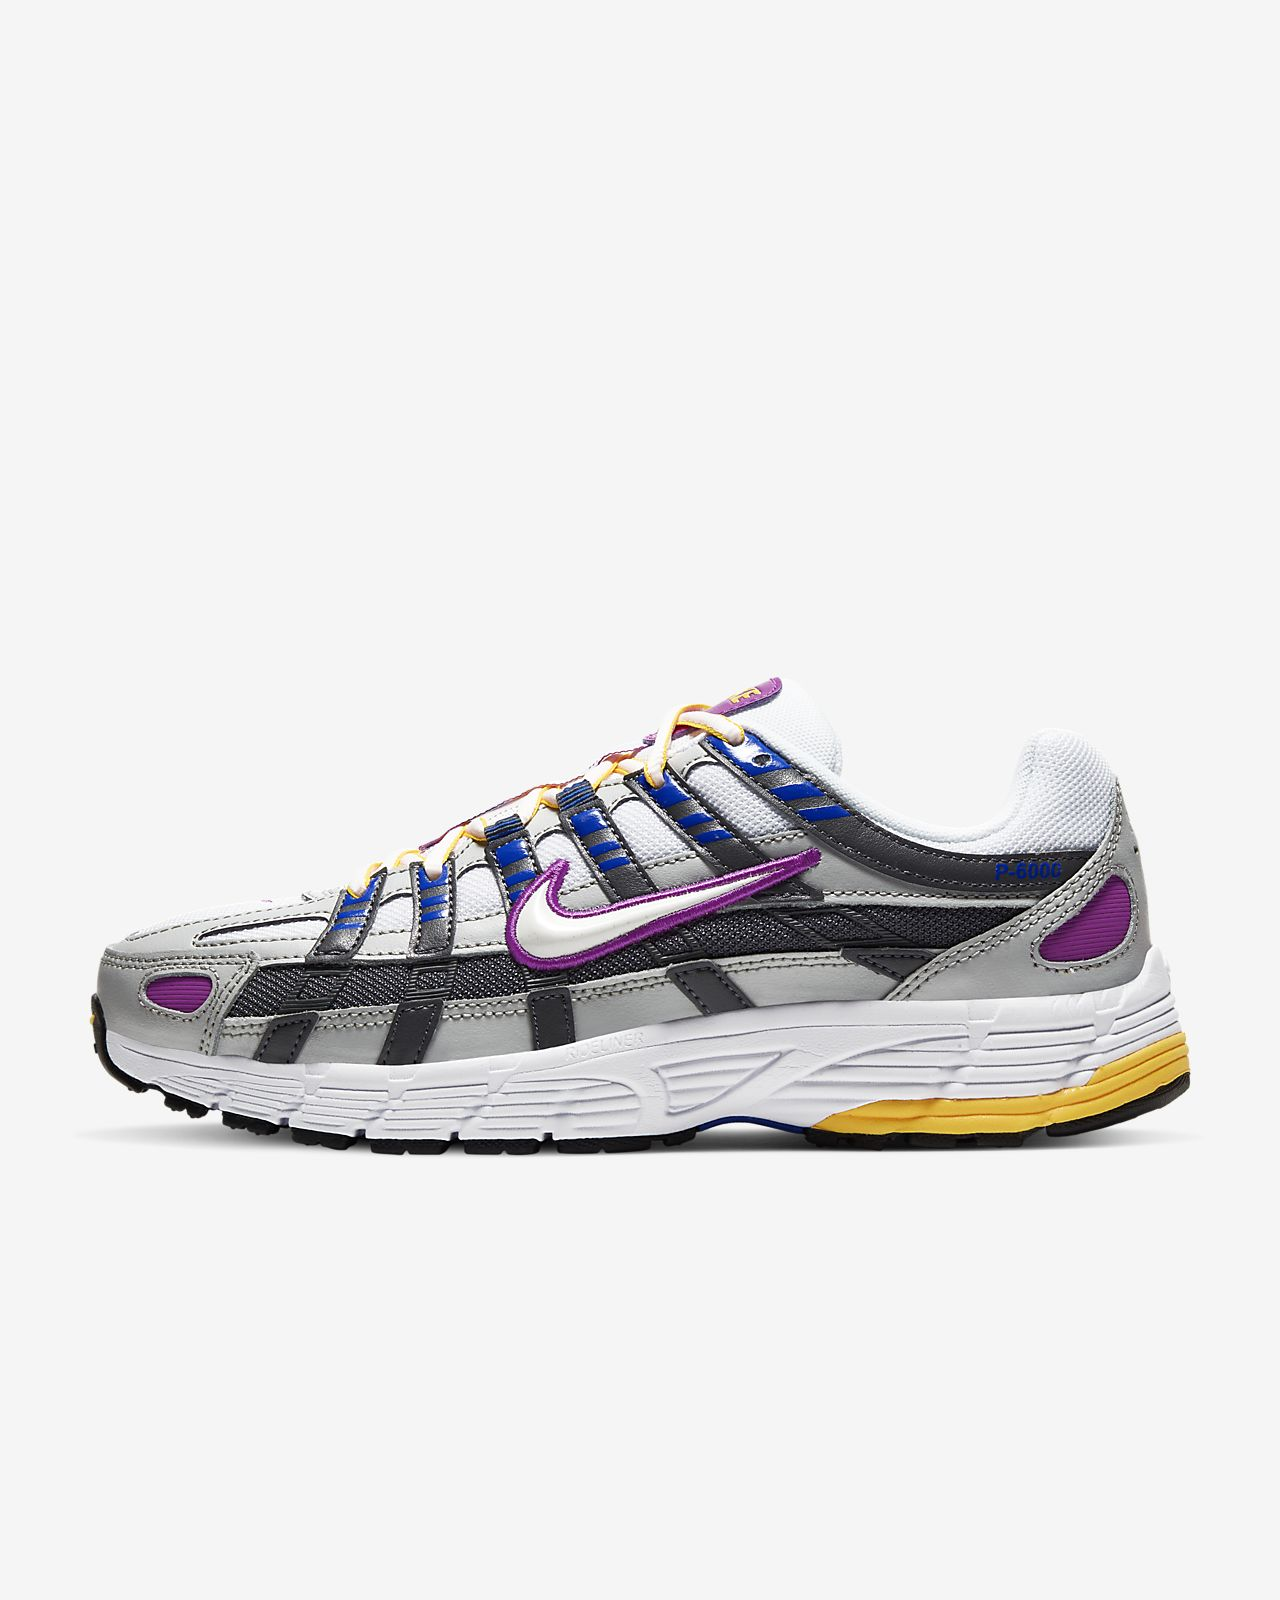 NIKE Official]Nike P-6000 Shoe.Online